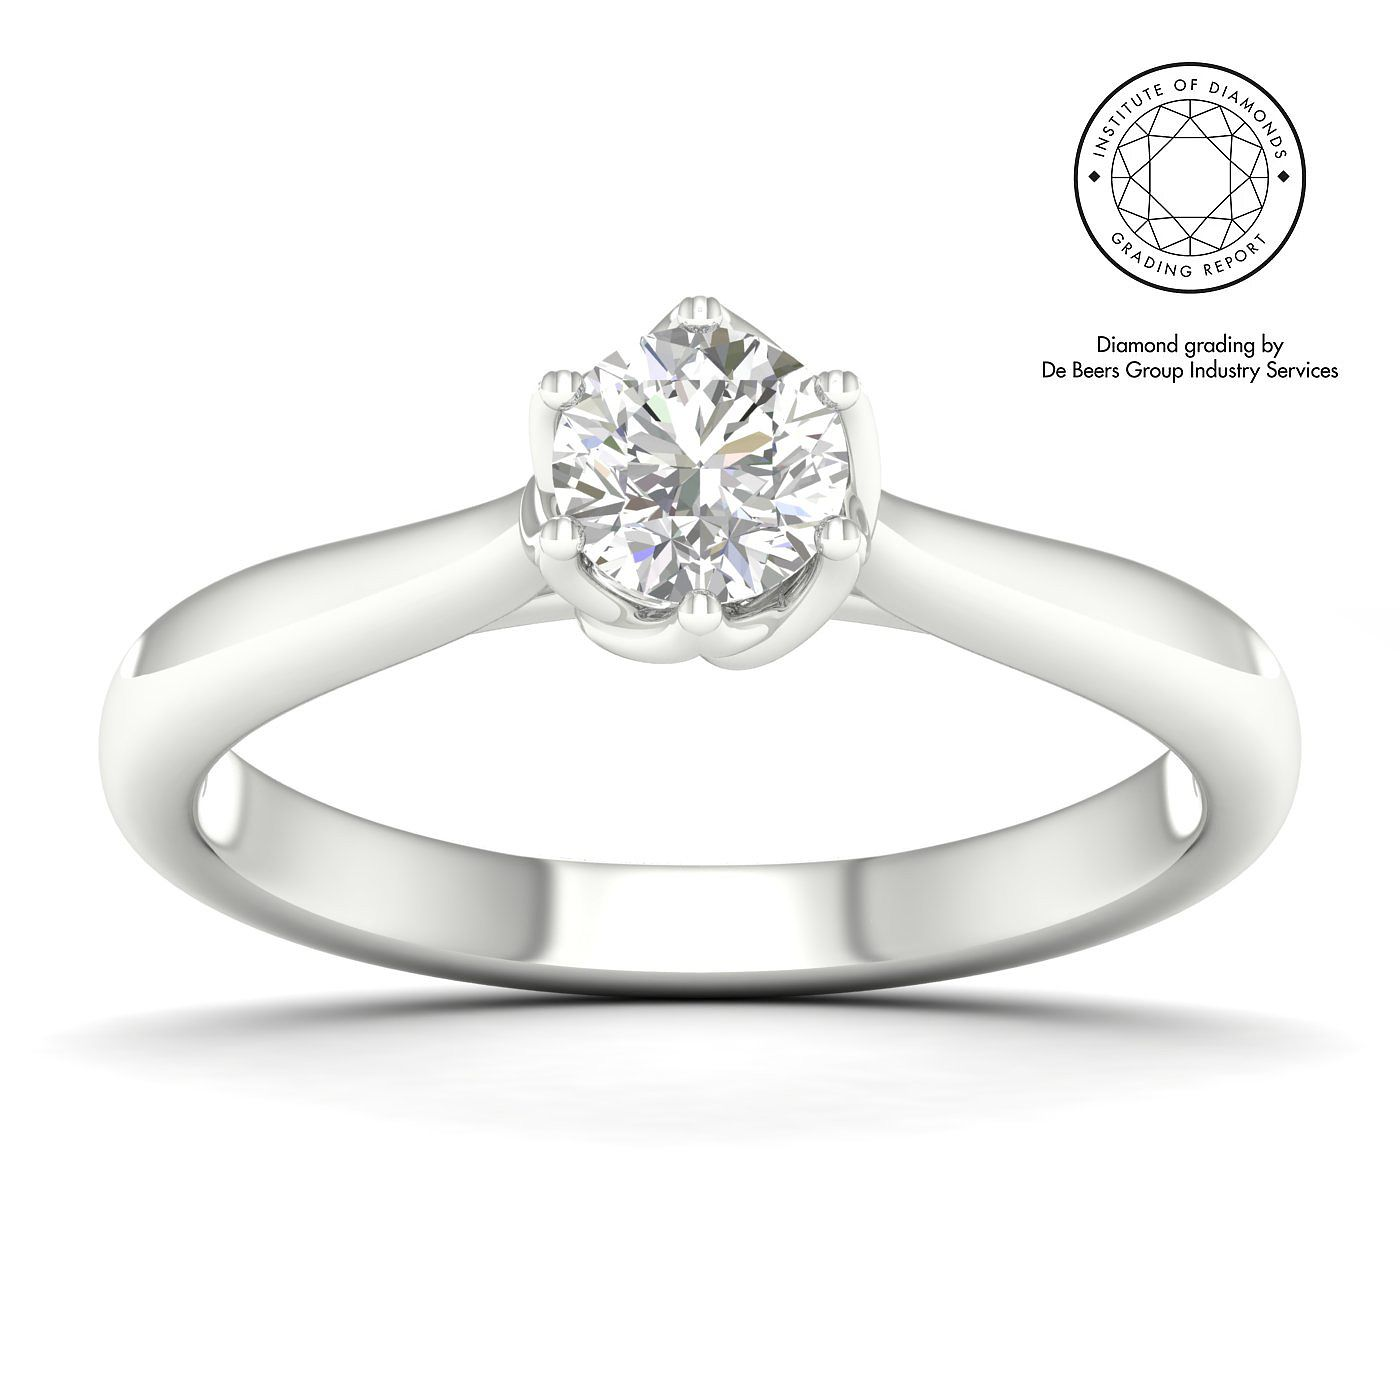 18ct White Gold & Platinum 1/2ct Diamond Solitaire Ring - Product number 5327954